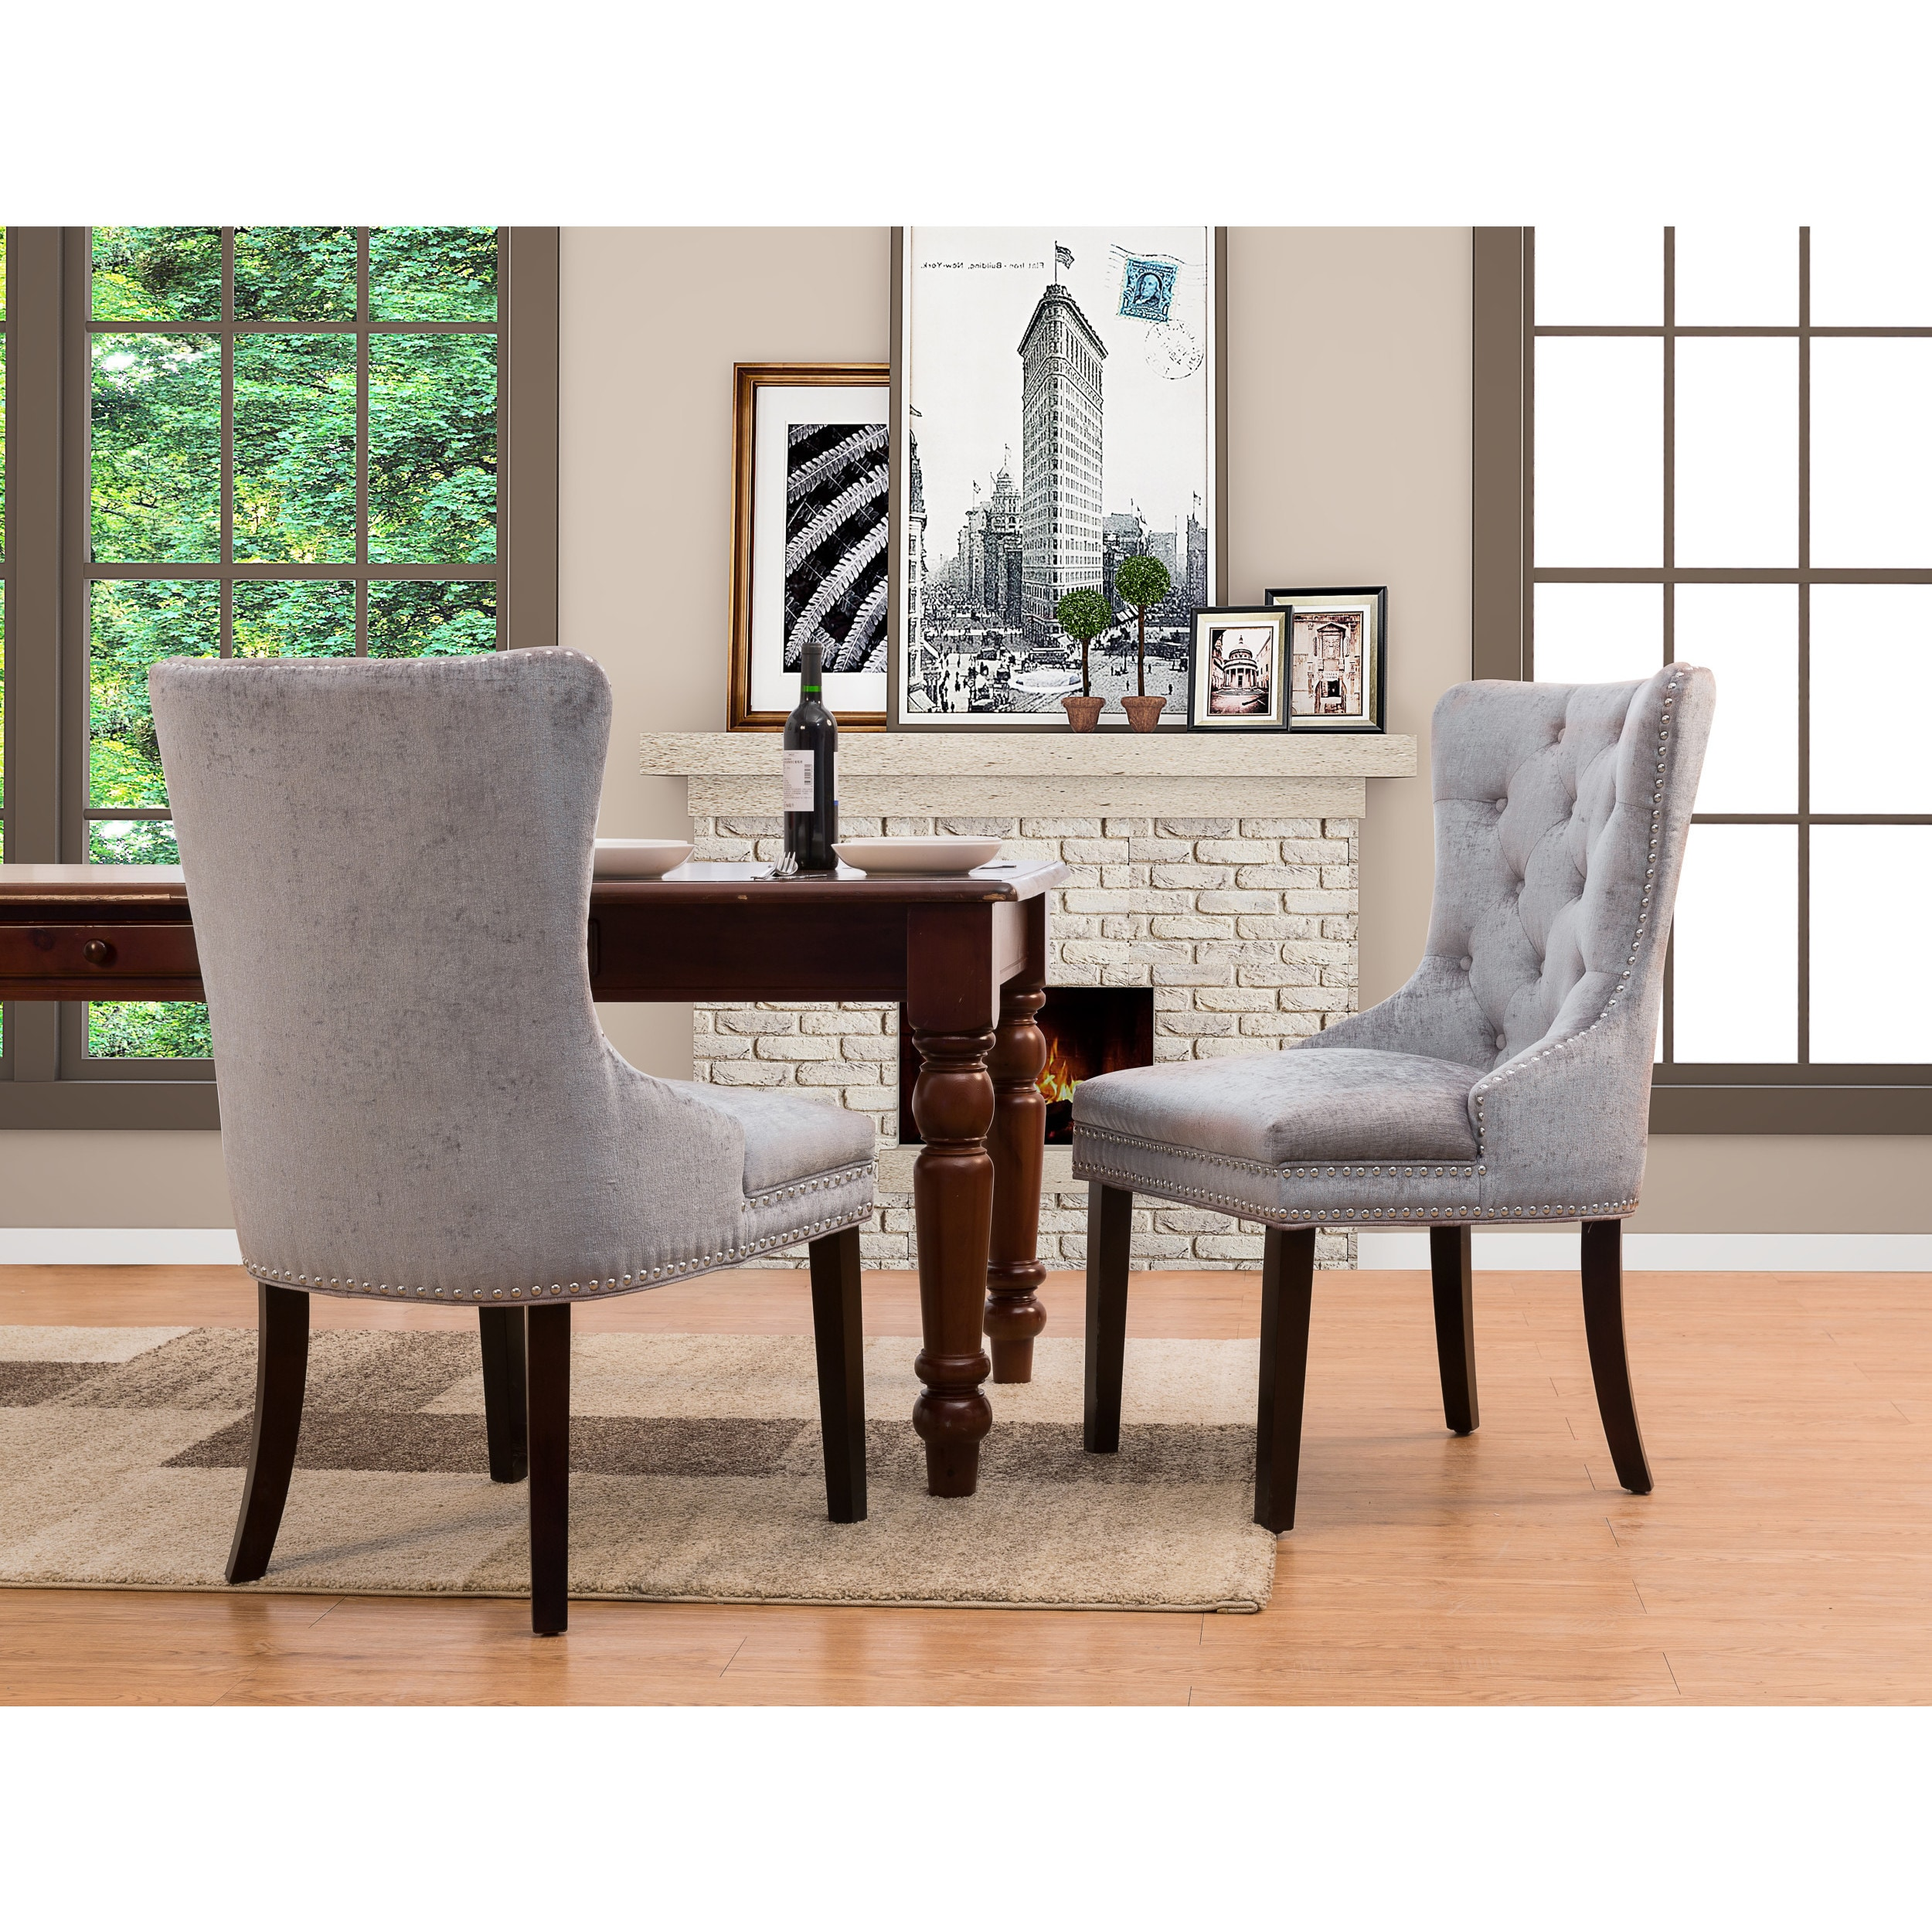 wall top chairs minimalist walmart modern build chair bo contemporary room choice leg white rectangle most accent people rug wood glass for rugs wooden dining grey bookcase table stained black clear their